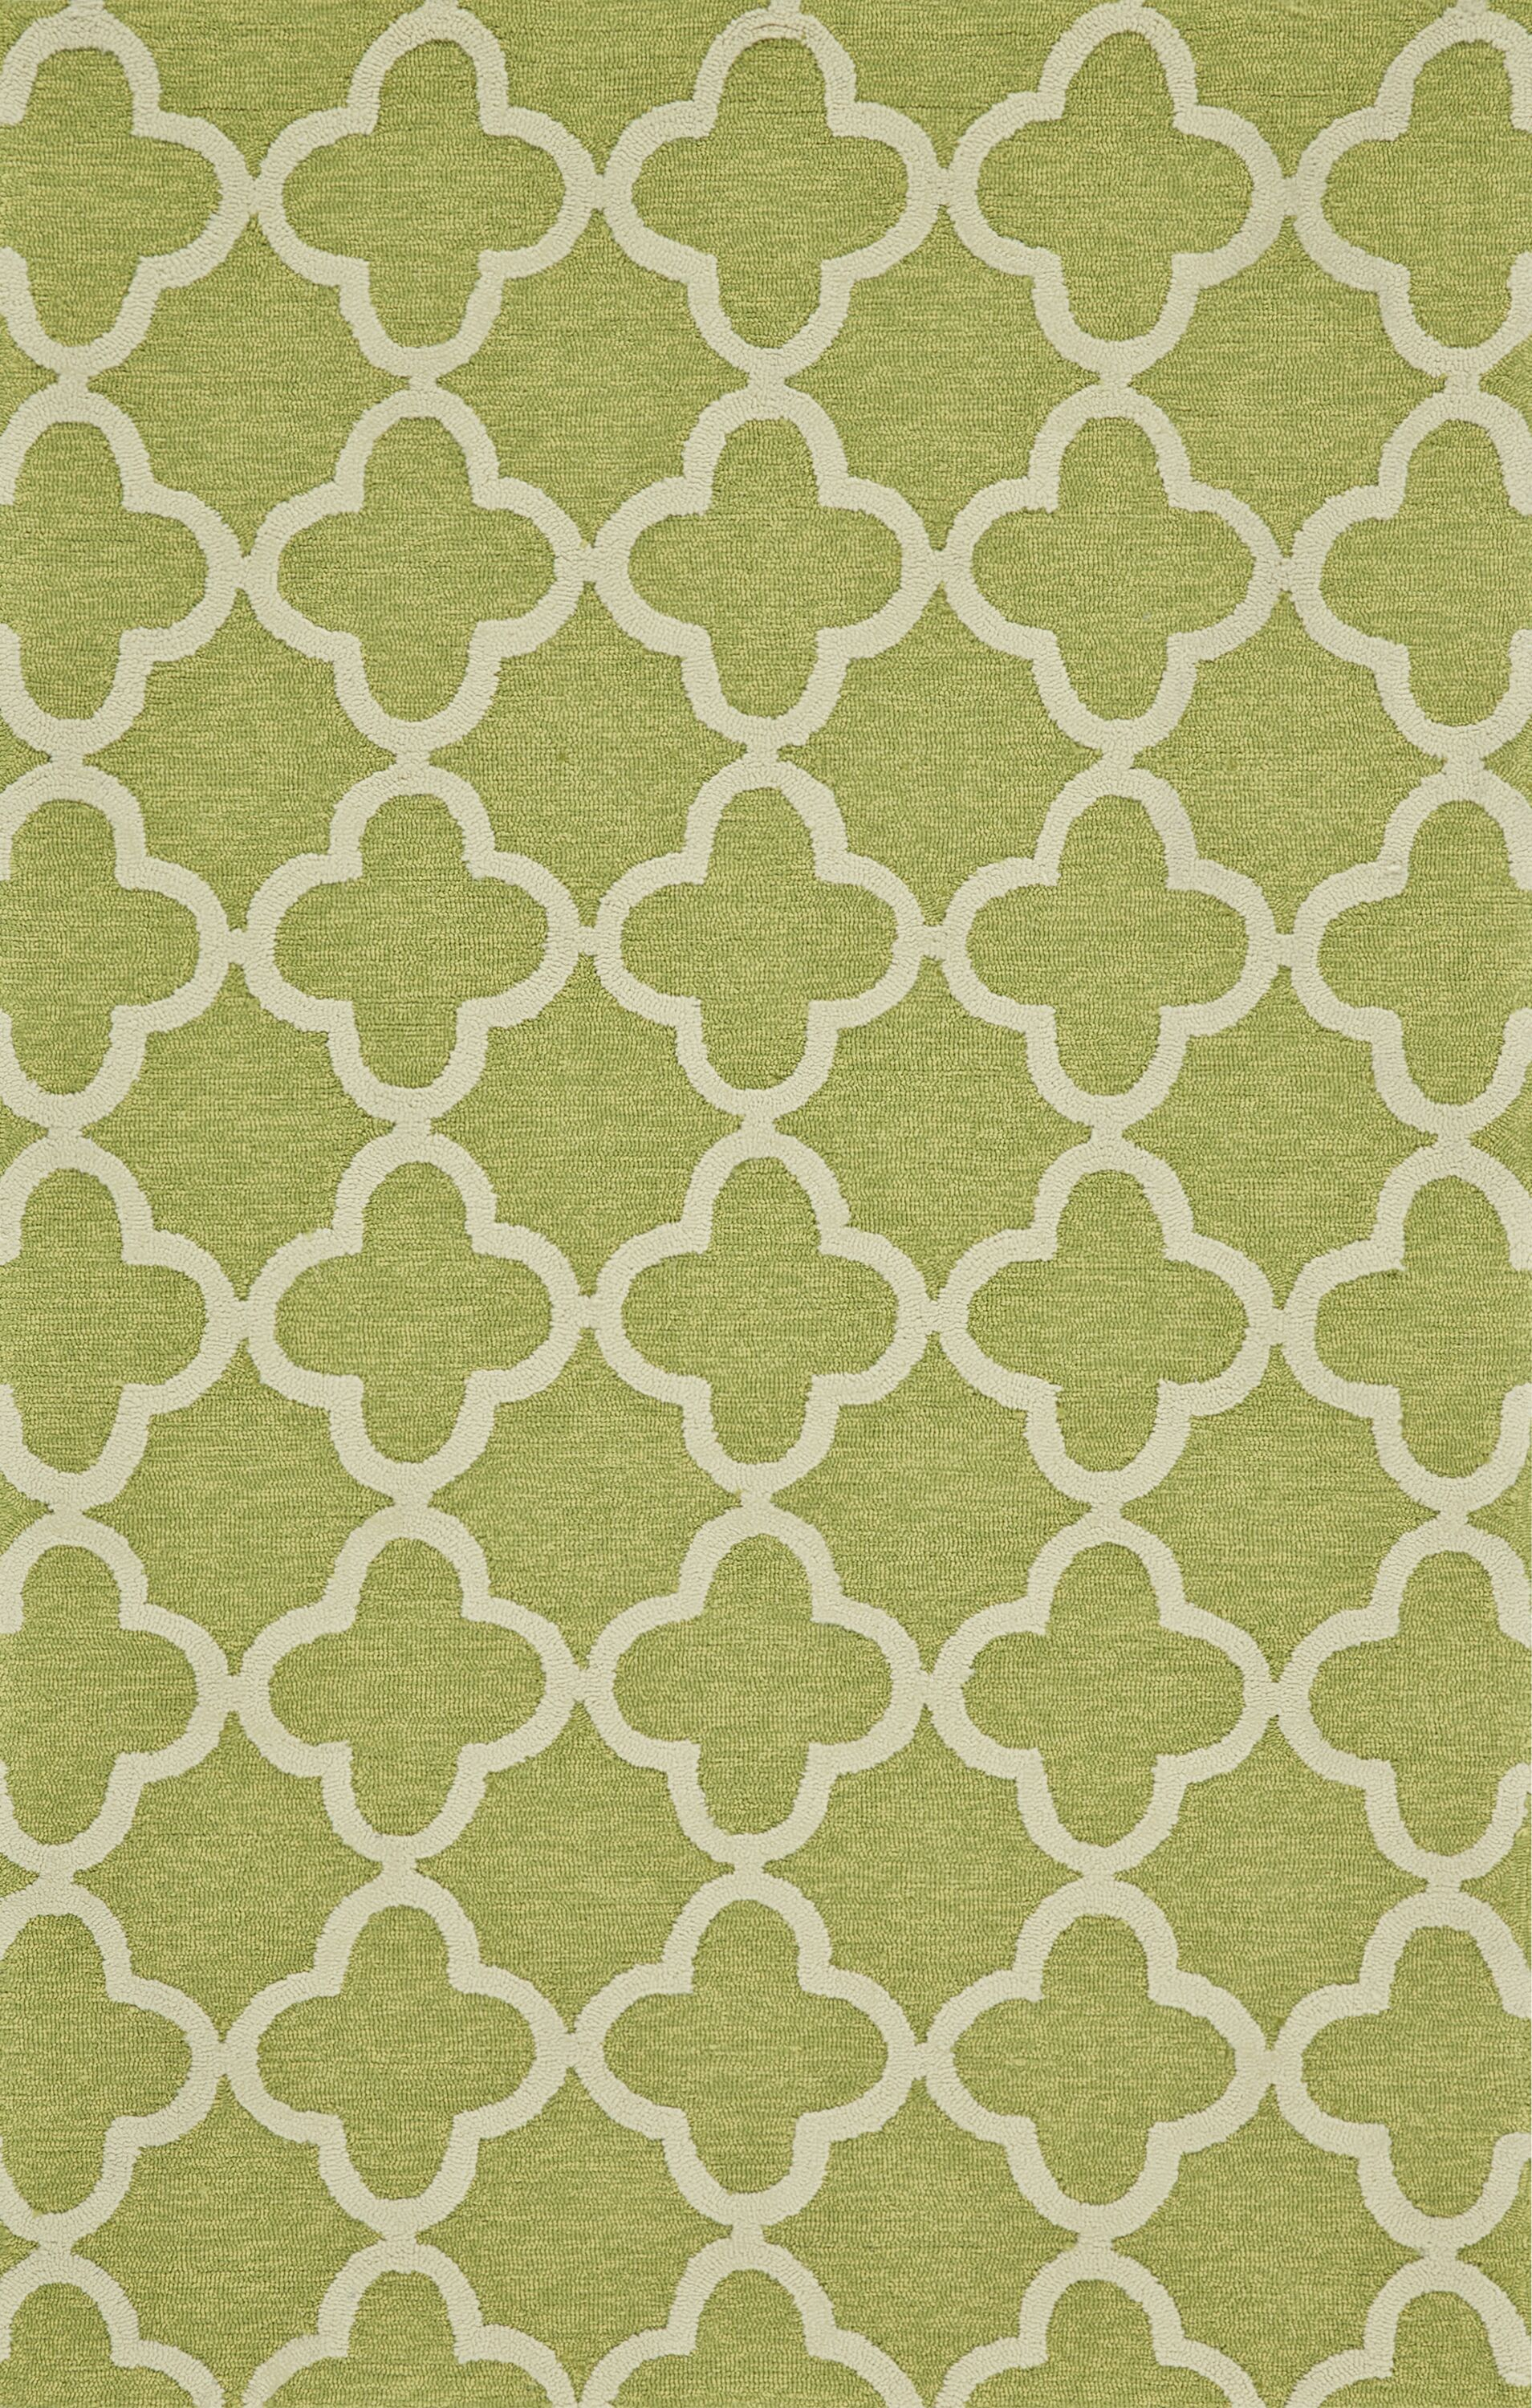 Hand-Tufted Green Outdoor Area Rug Rug Size: Rectangle 2' x 3'